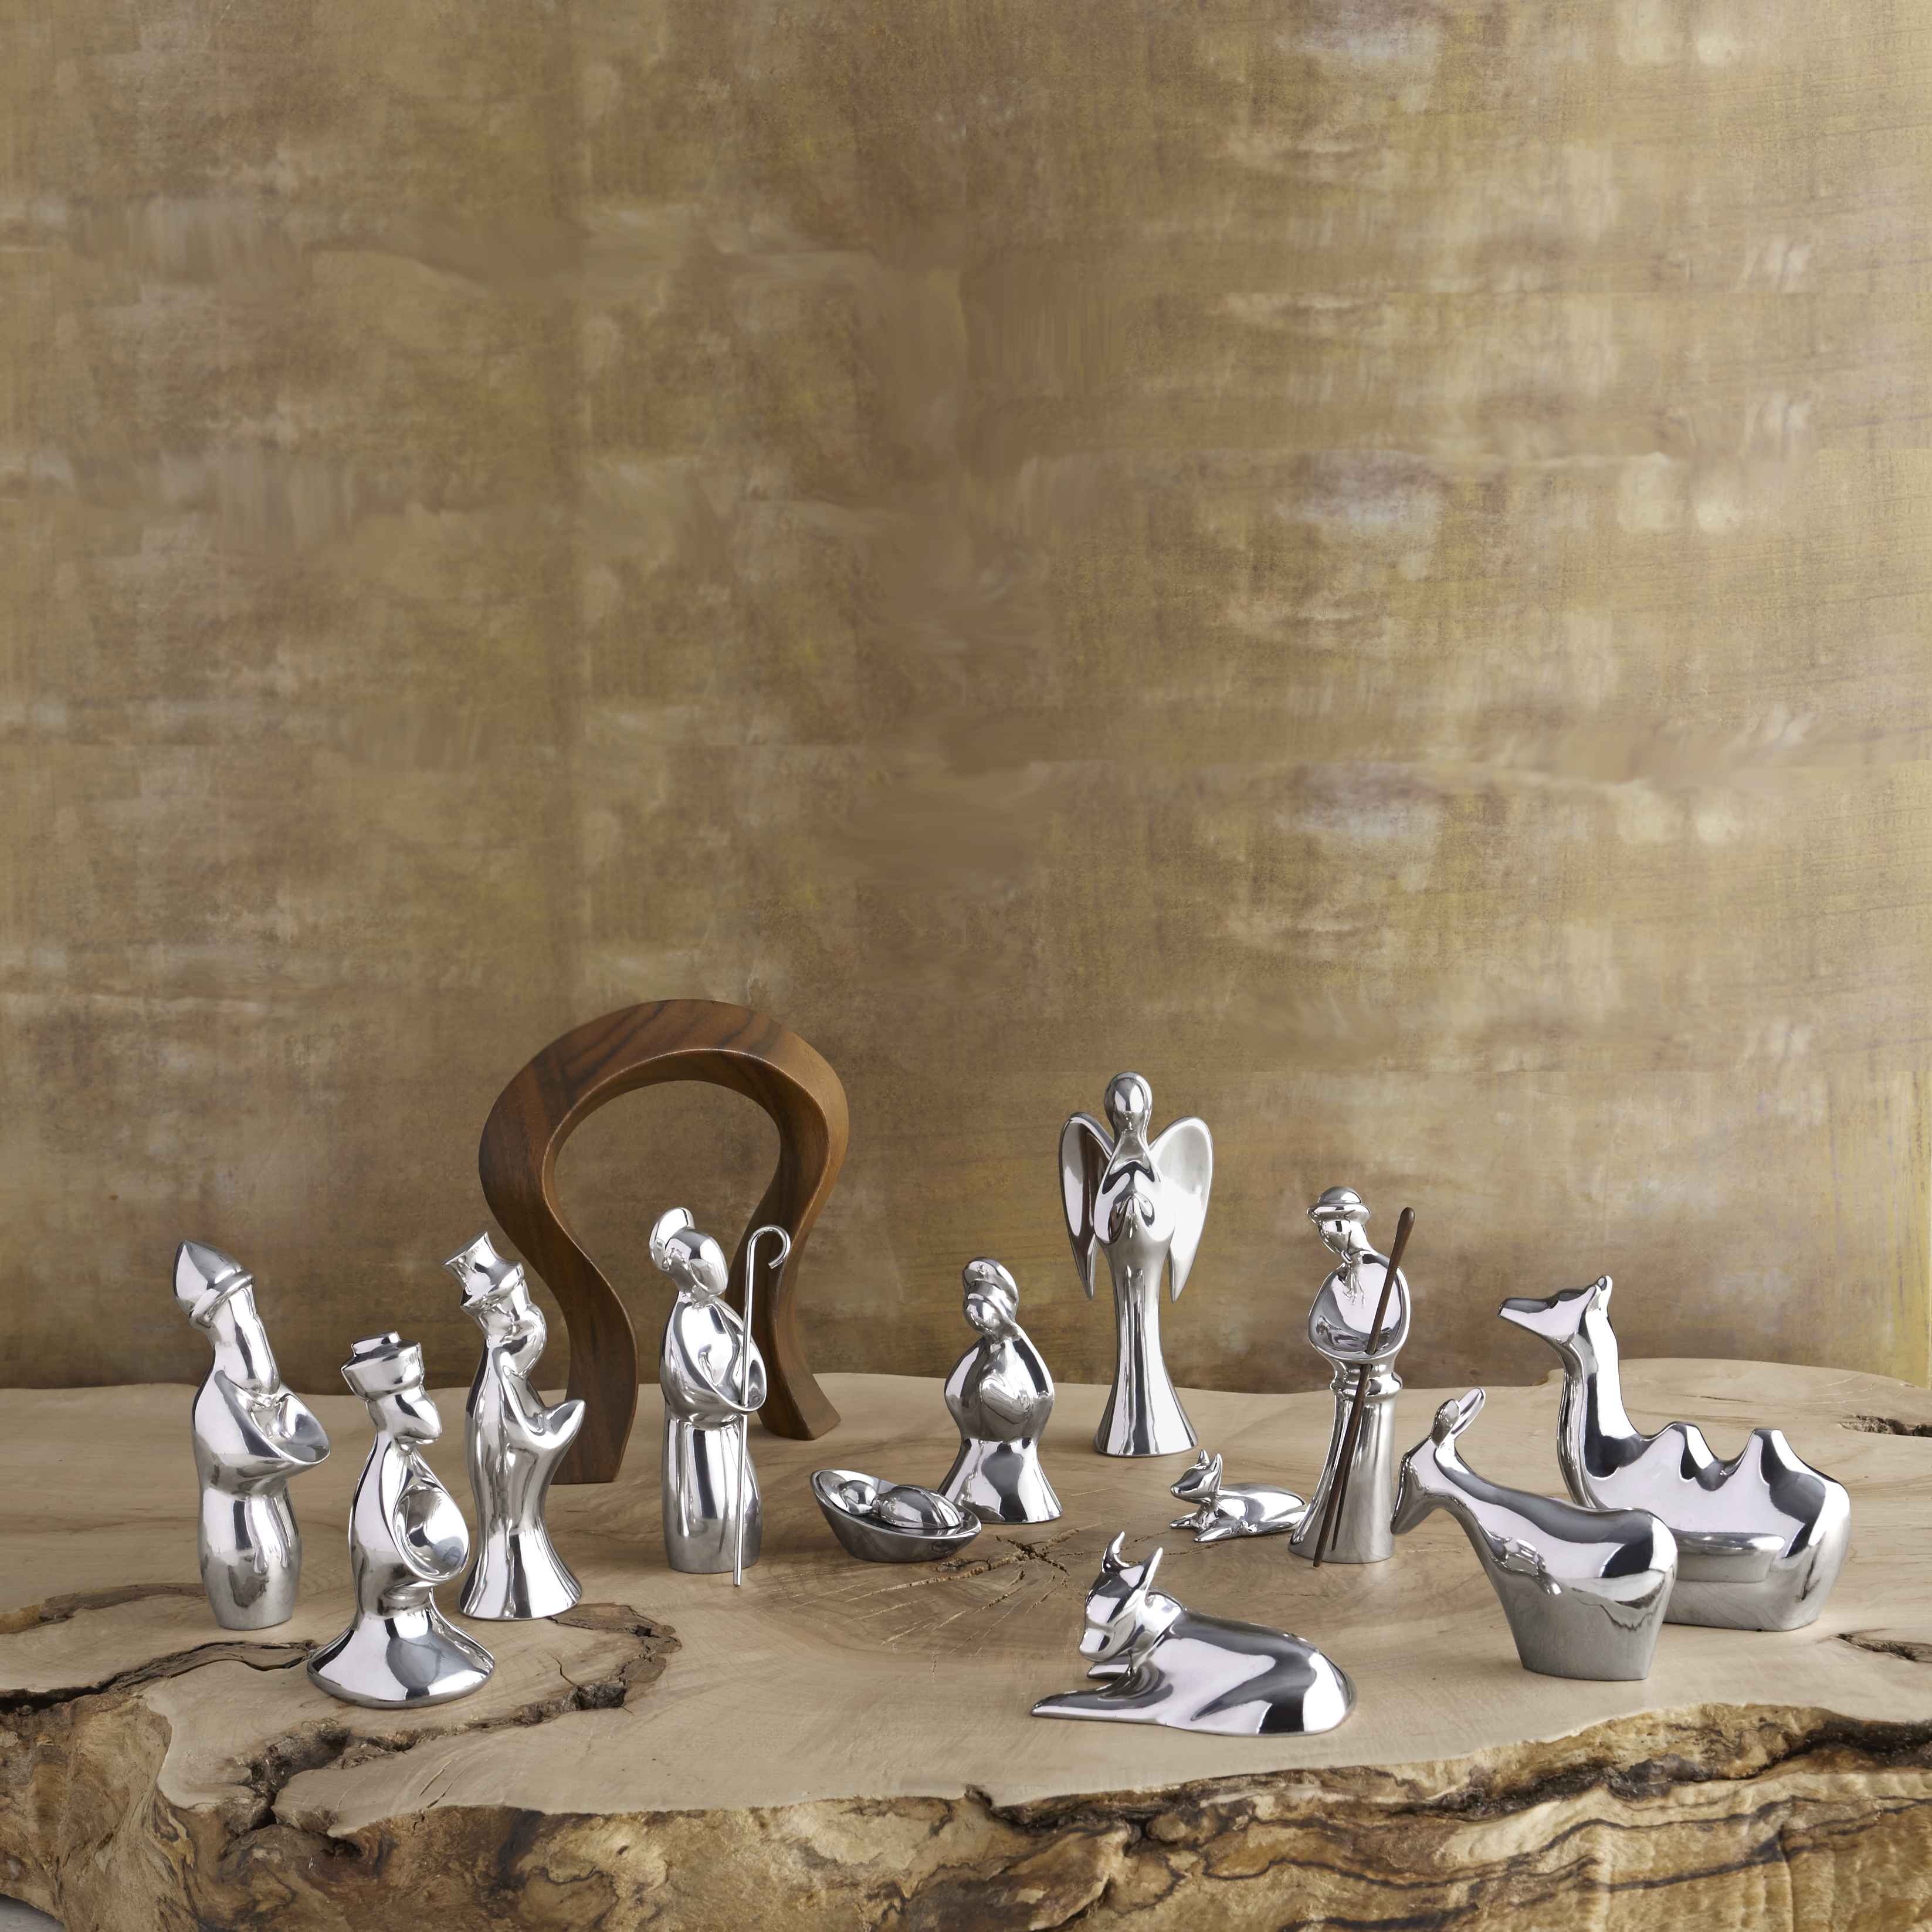 13-Piece Miniature Nativity Set with Free Storage Box image number 1